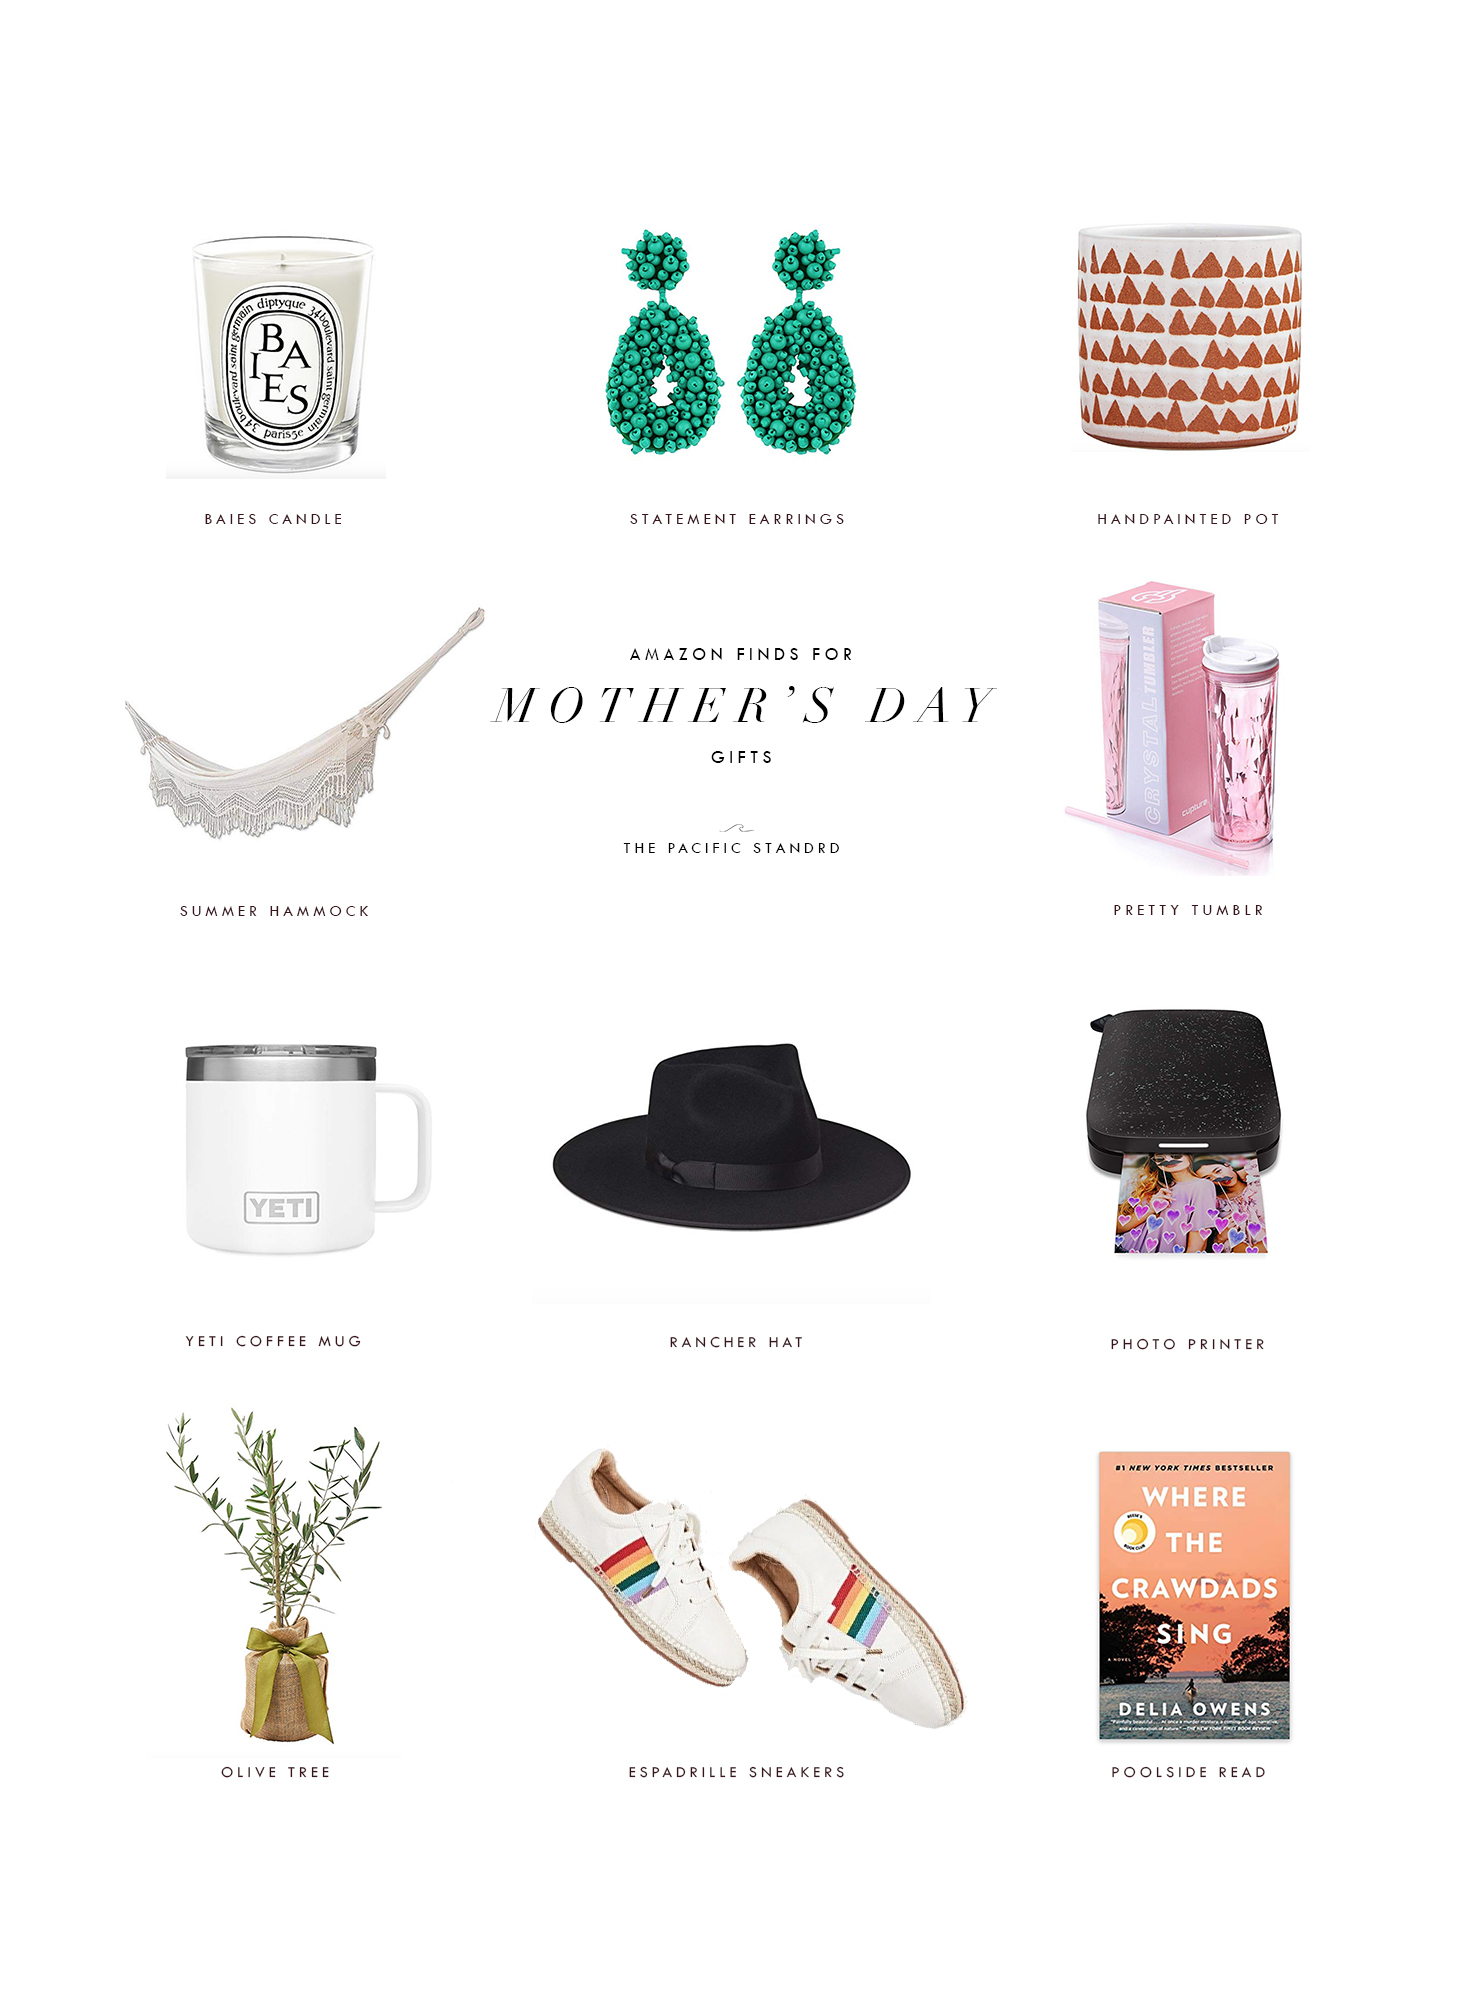 Mother's Day Gift Ideas from Amazon via. The Pacific Standard | www.thepacificstandard.com